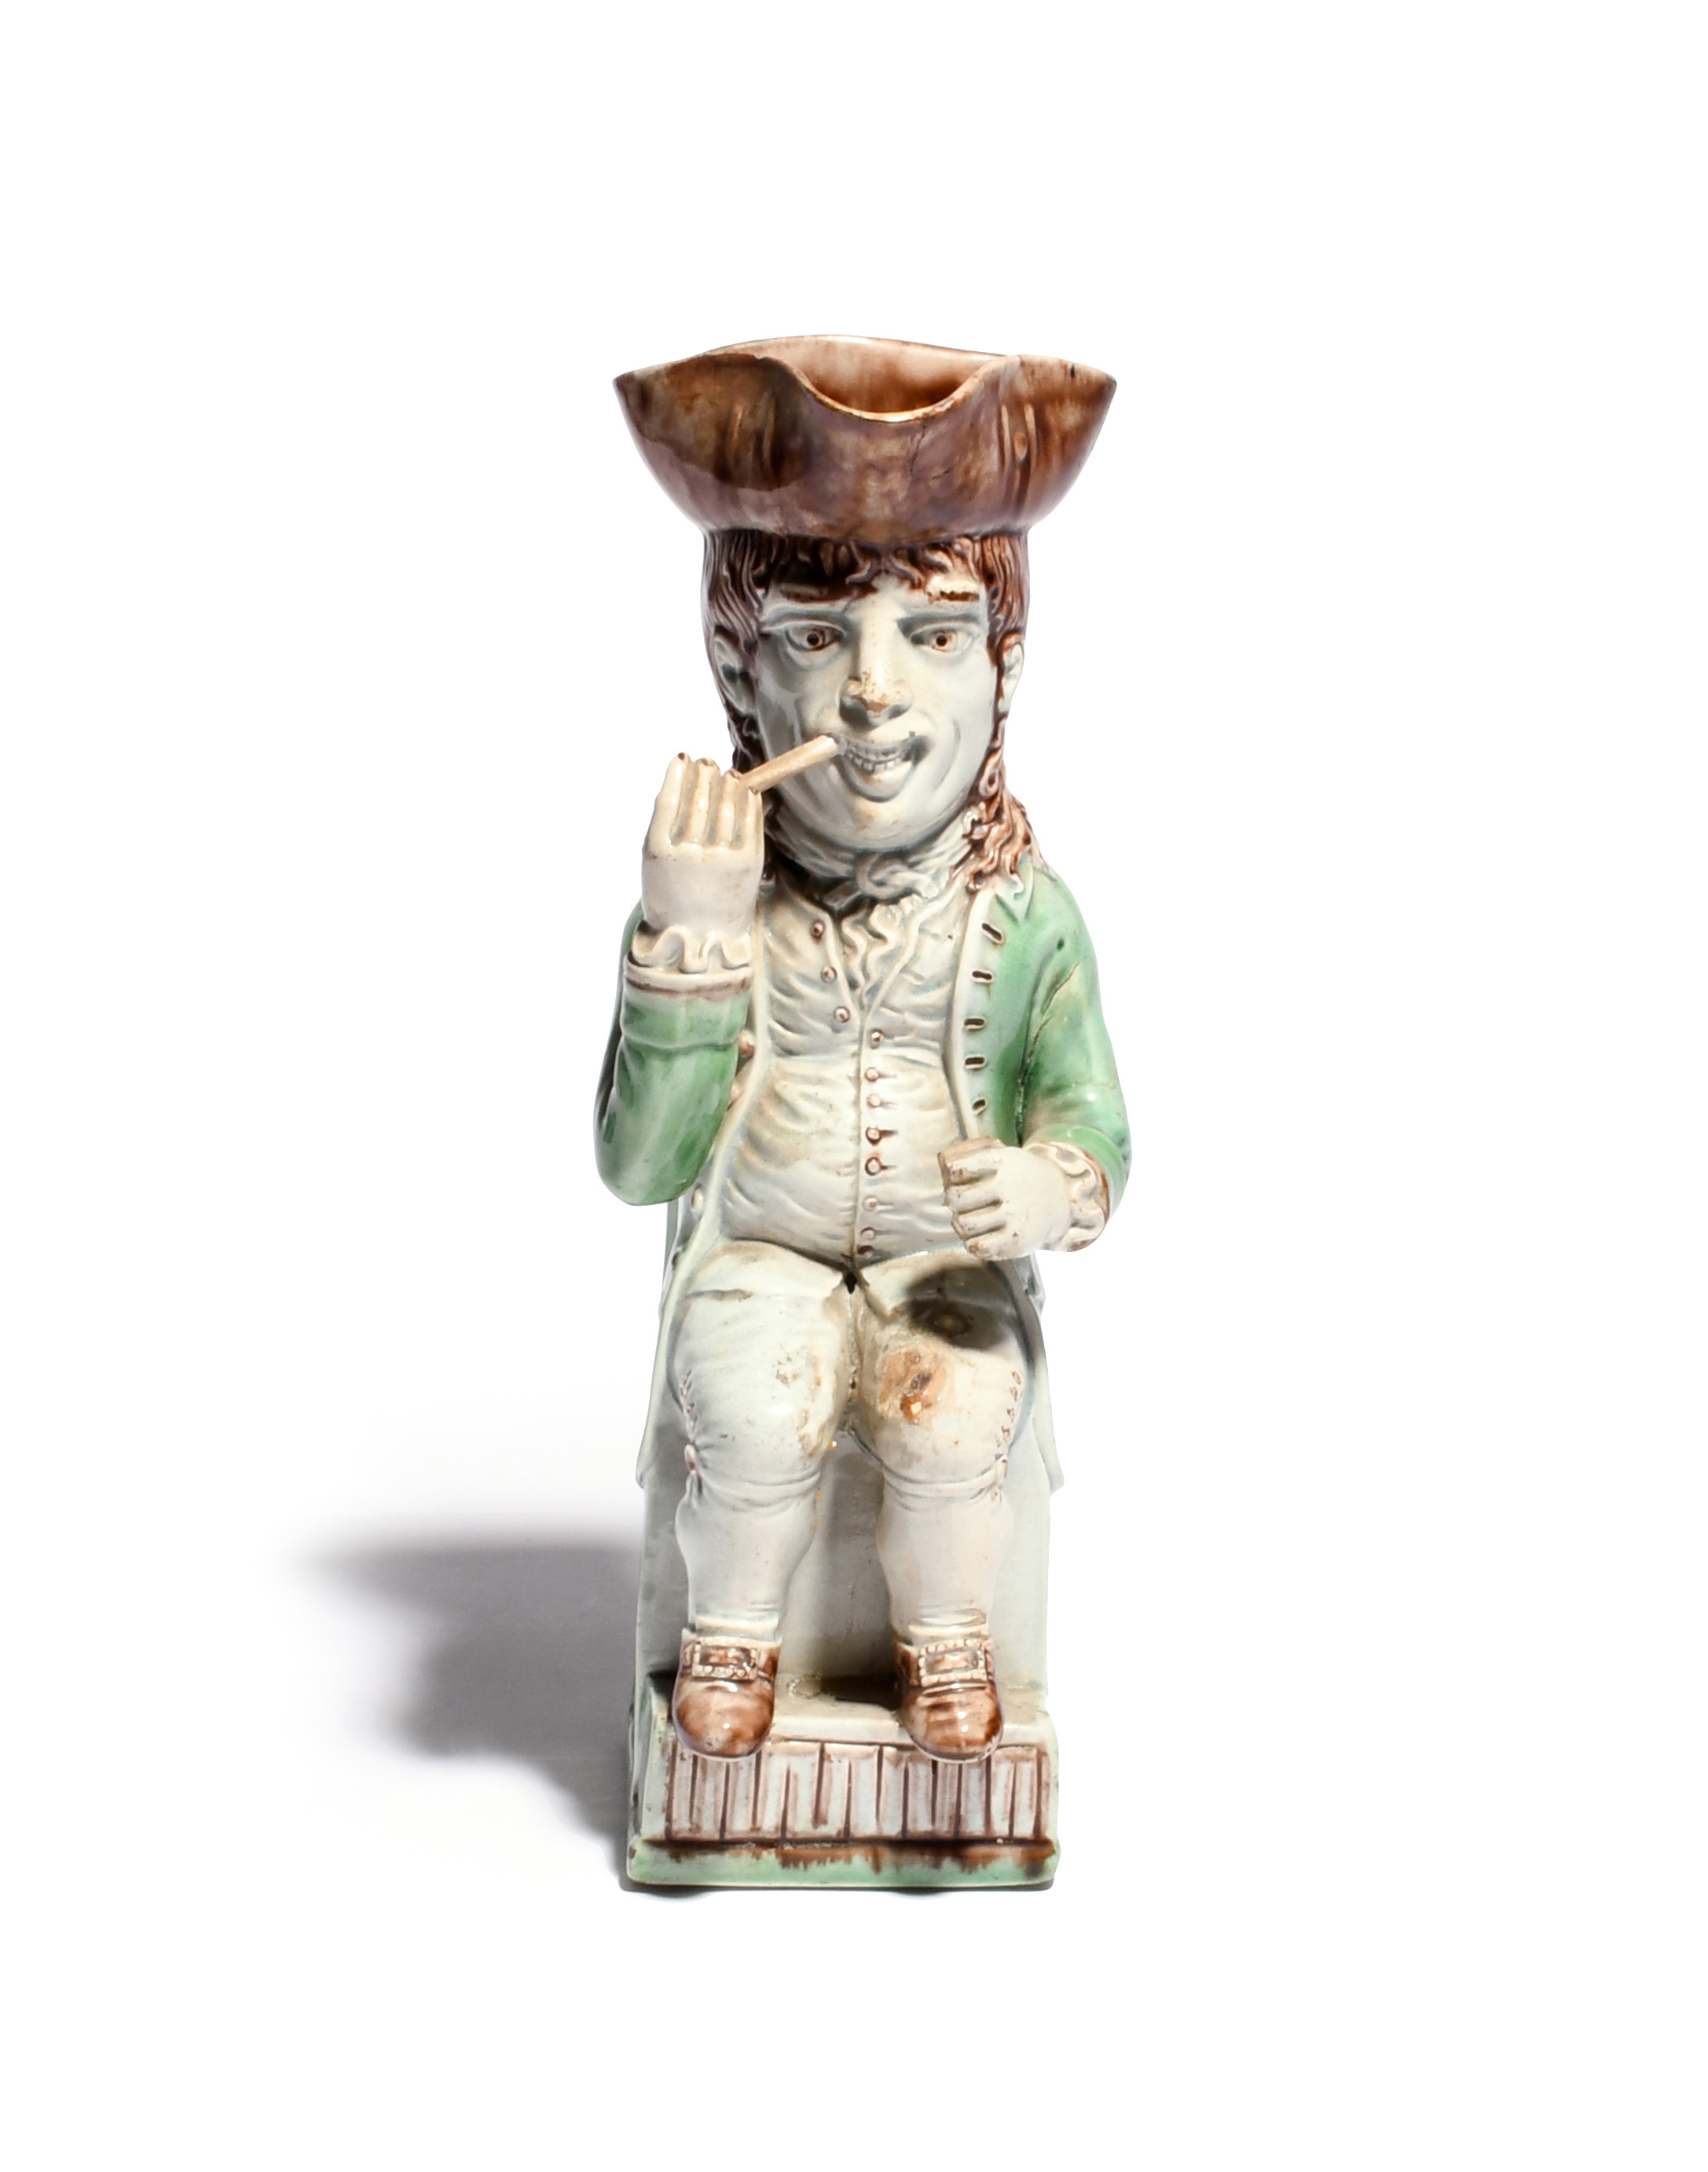 A Wood family Thin Man Toby jug c.1780, crisply modelled and seated on a stepped base, holding the - Image 2 of 2